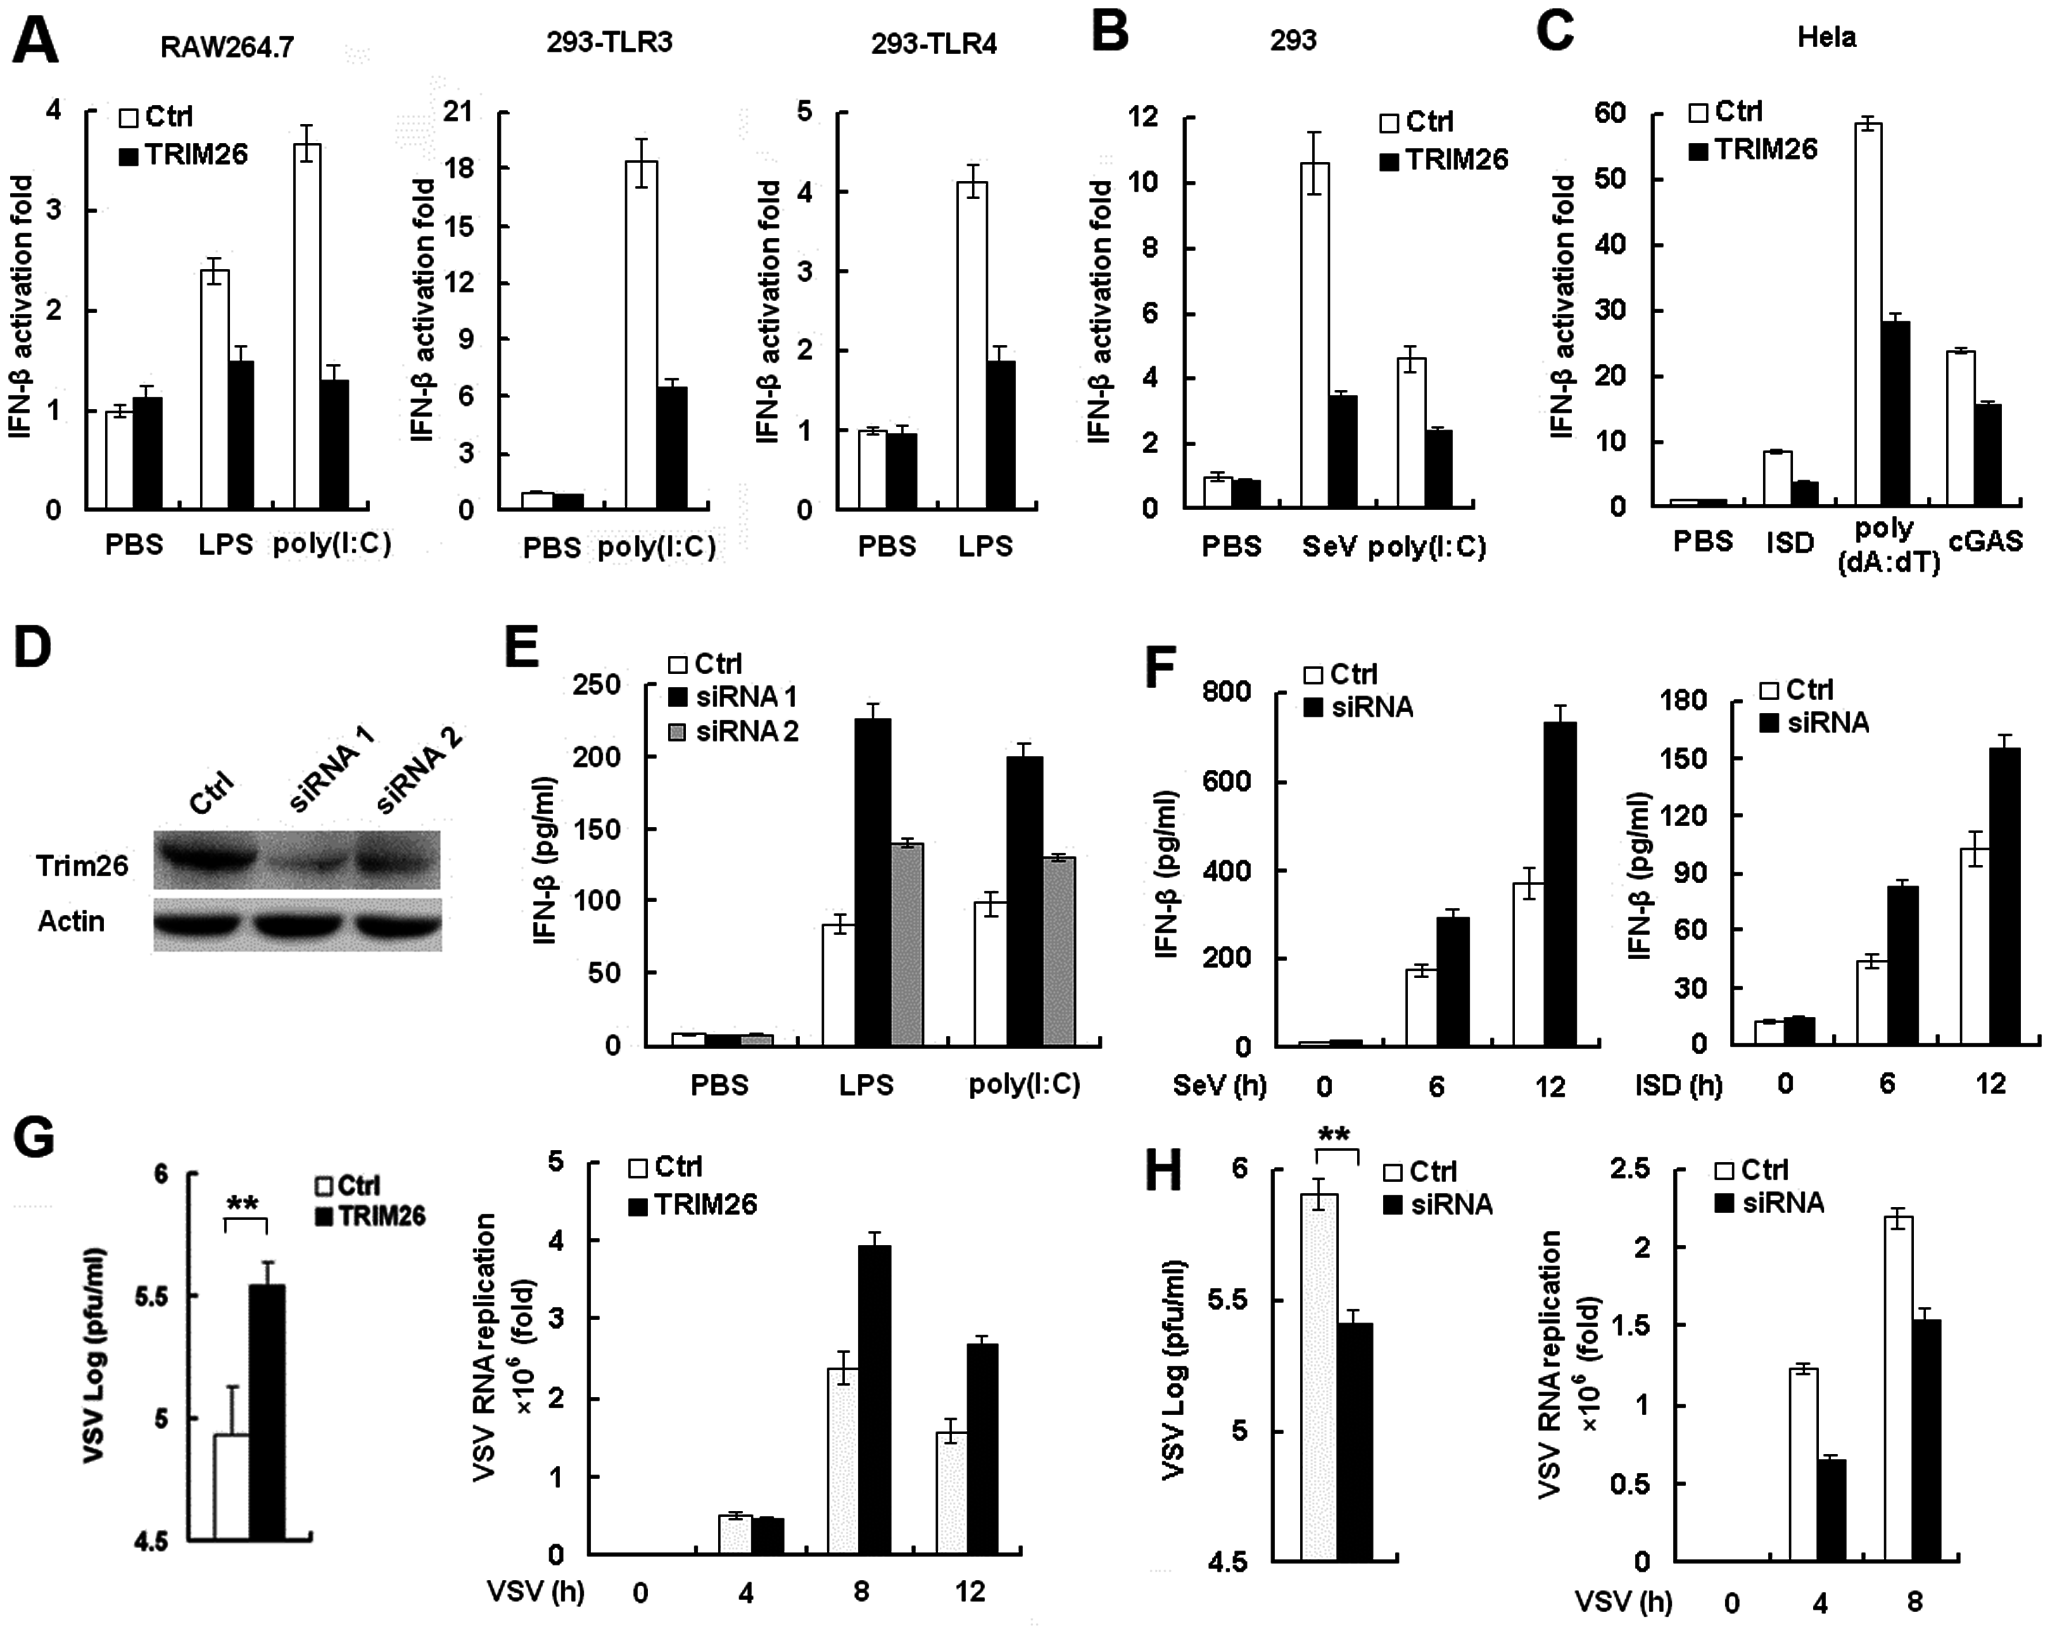 TRIM26 negatively regulates IFN-β production and antiviral response.